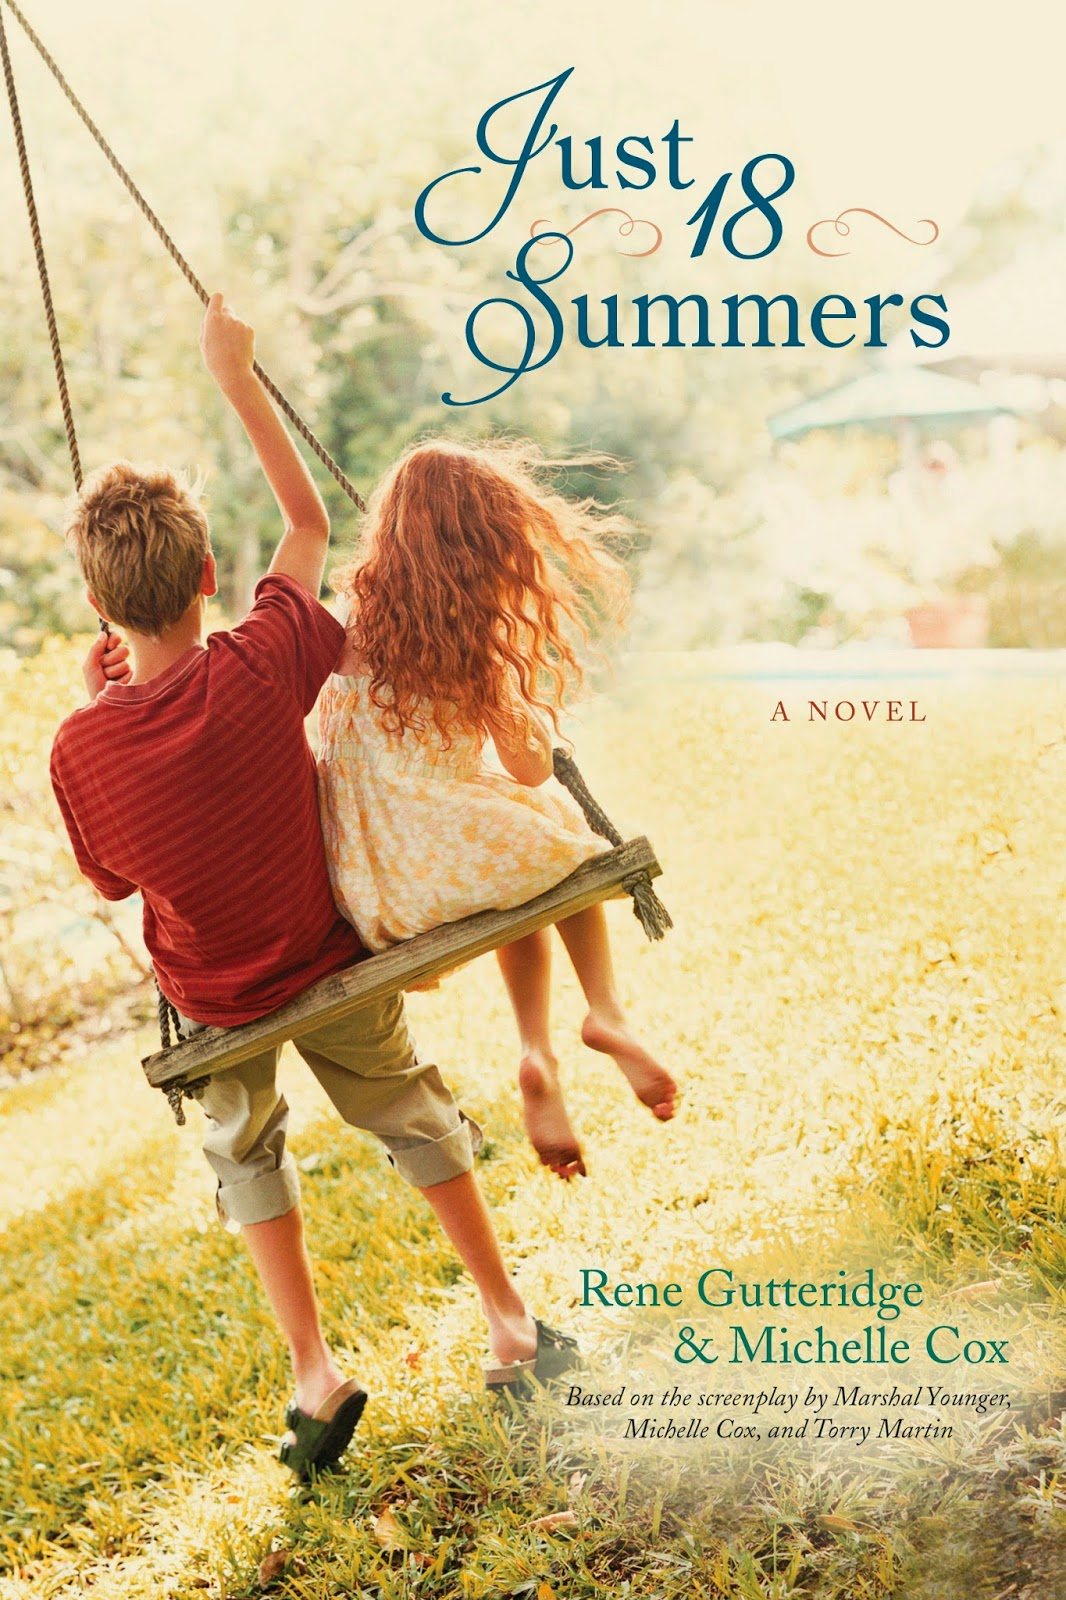 Just 18 Summers By Rene Gutteridge & Michelle Cox